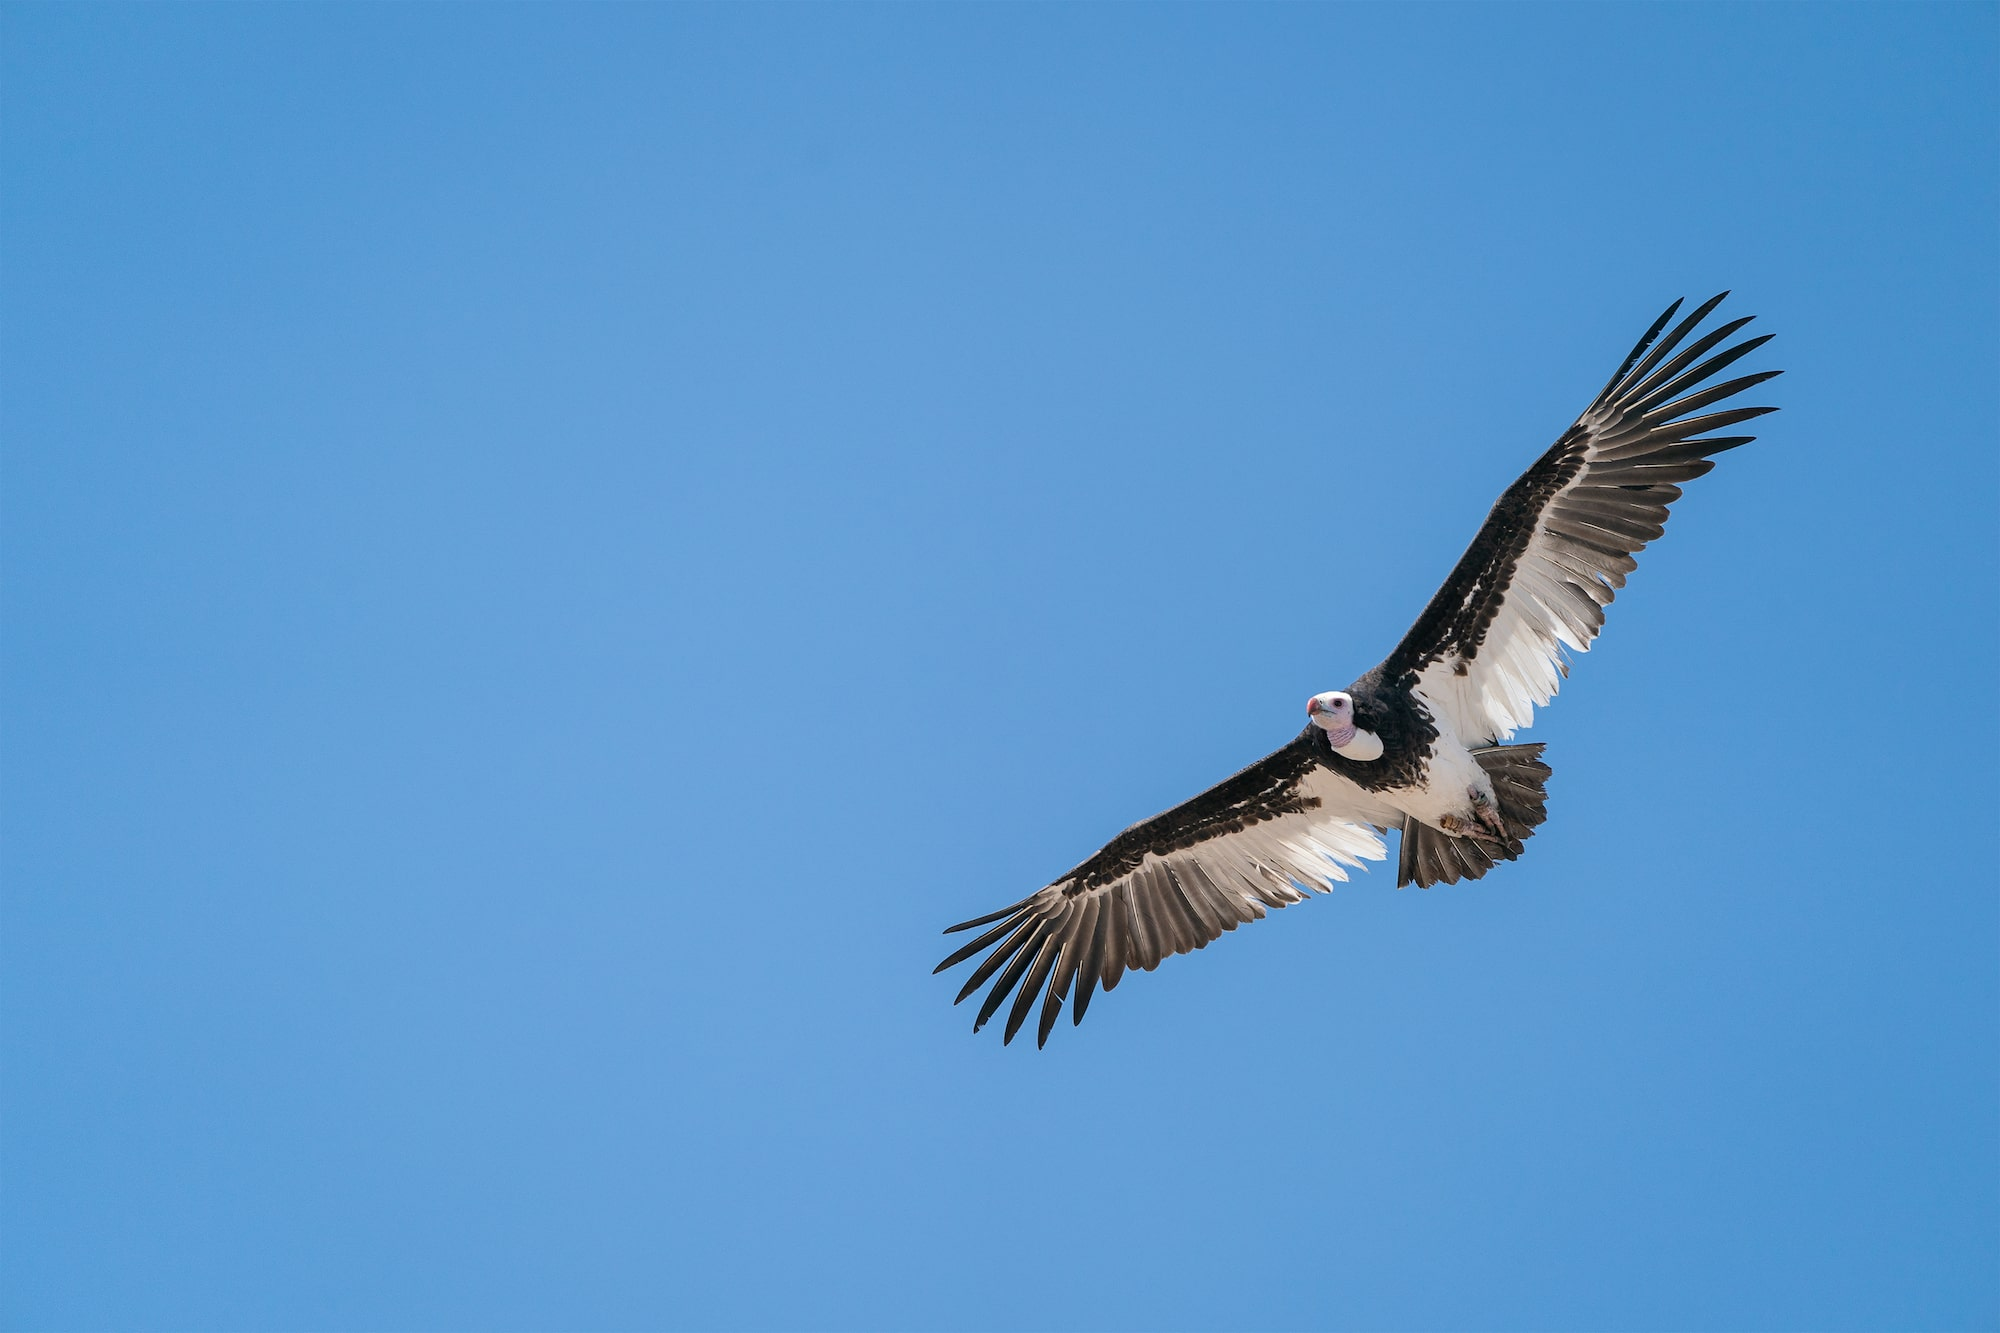 A rare white-headed vulture soars through the skies.